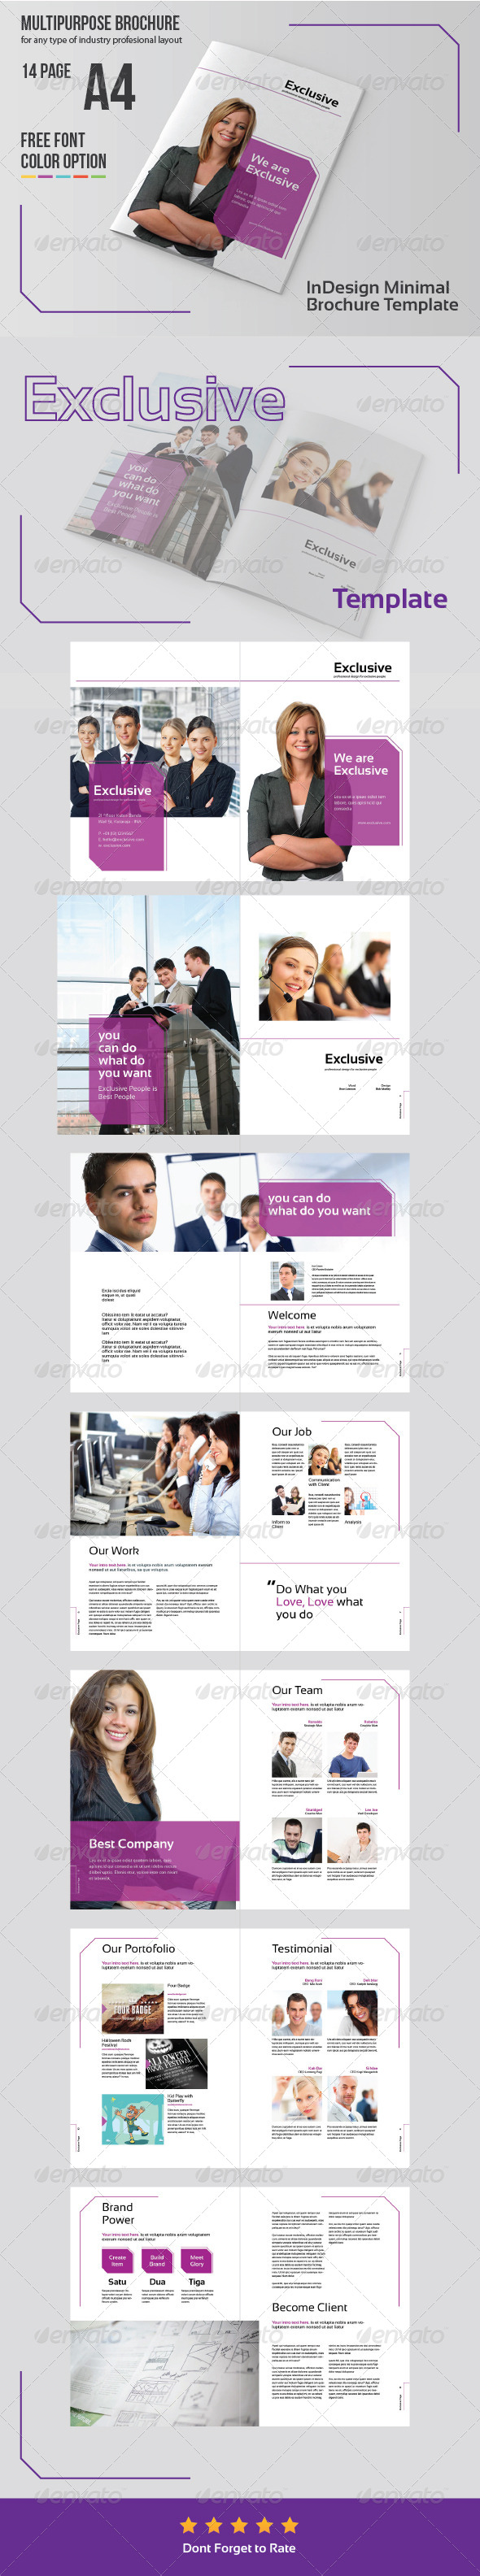 GraphicRiver Multipurpose Business Brochure Template 6045272